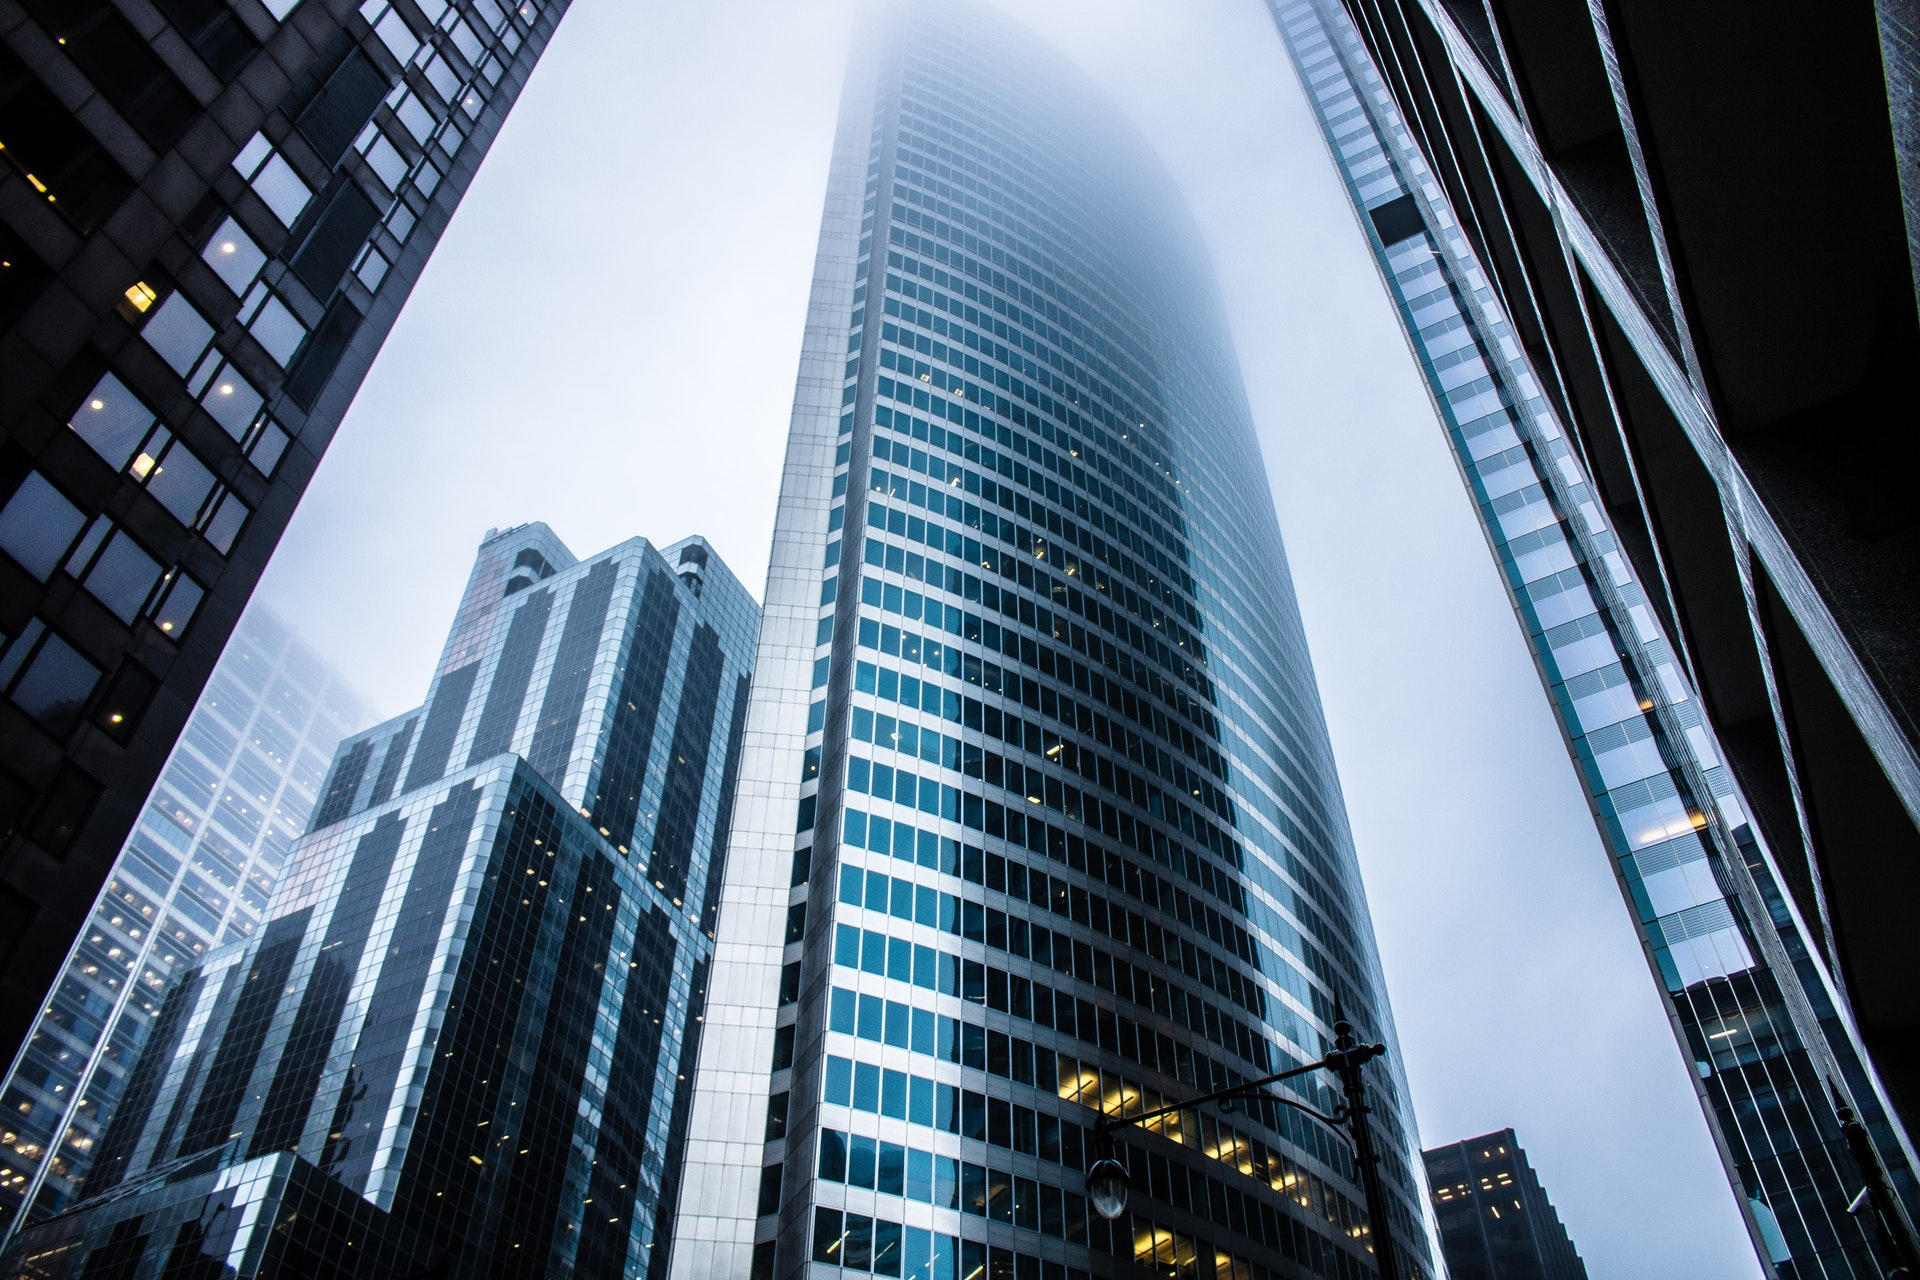 gray-high-rise-buildings-936722